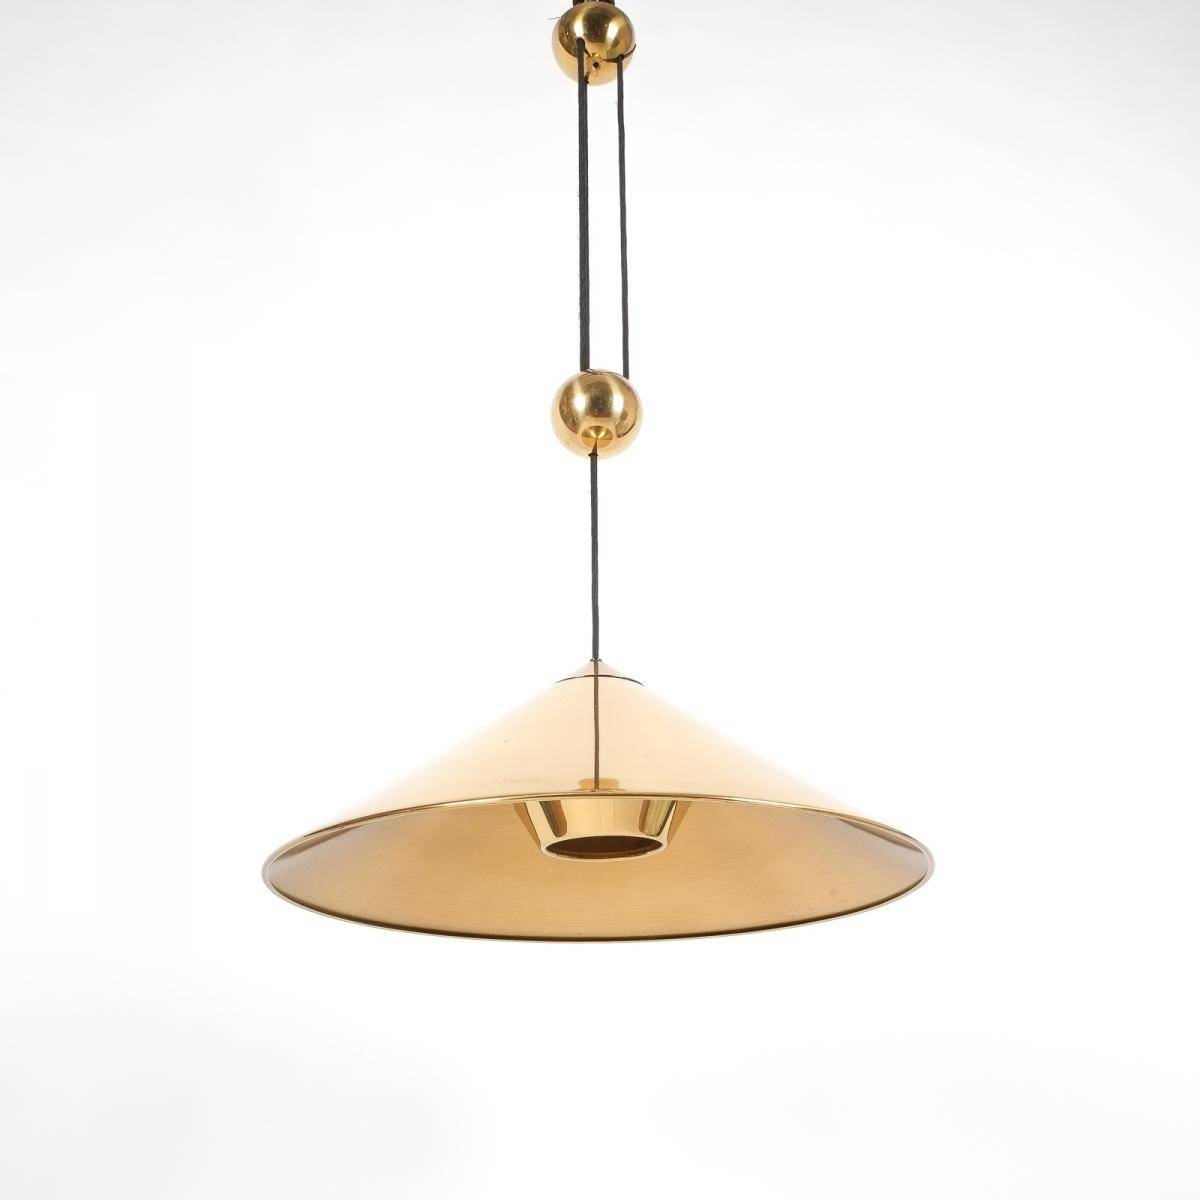 Large Adjustable Polished Brass Counterweight Pendant Lamp For Counterweight Pendant Lights (View 11 of 15)